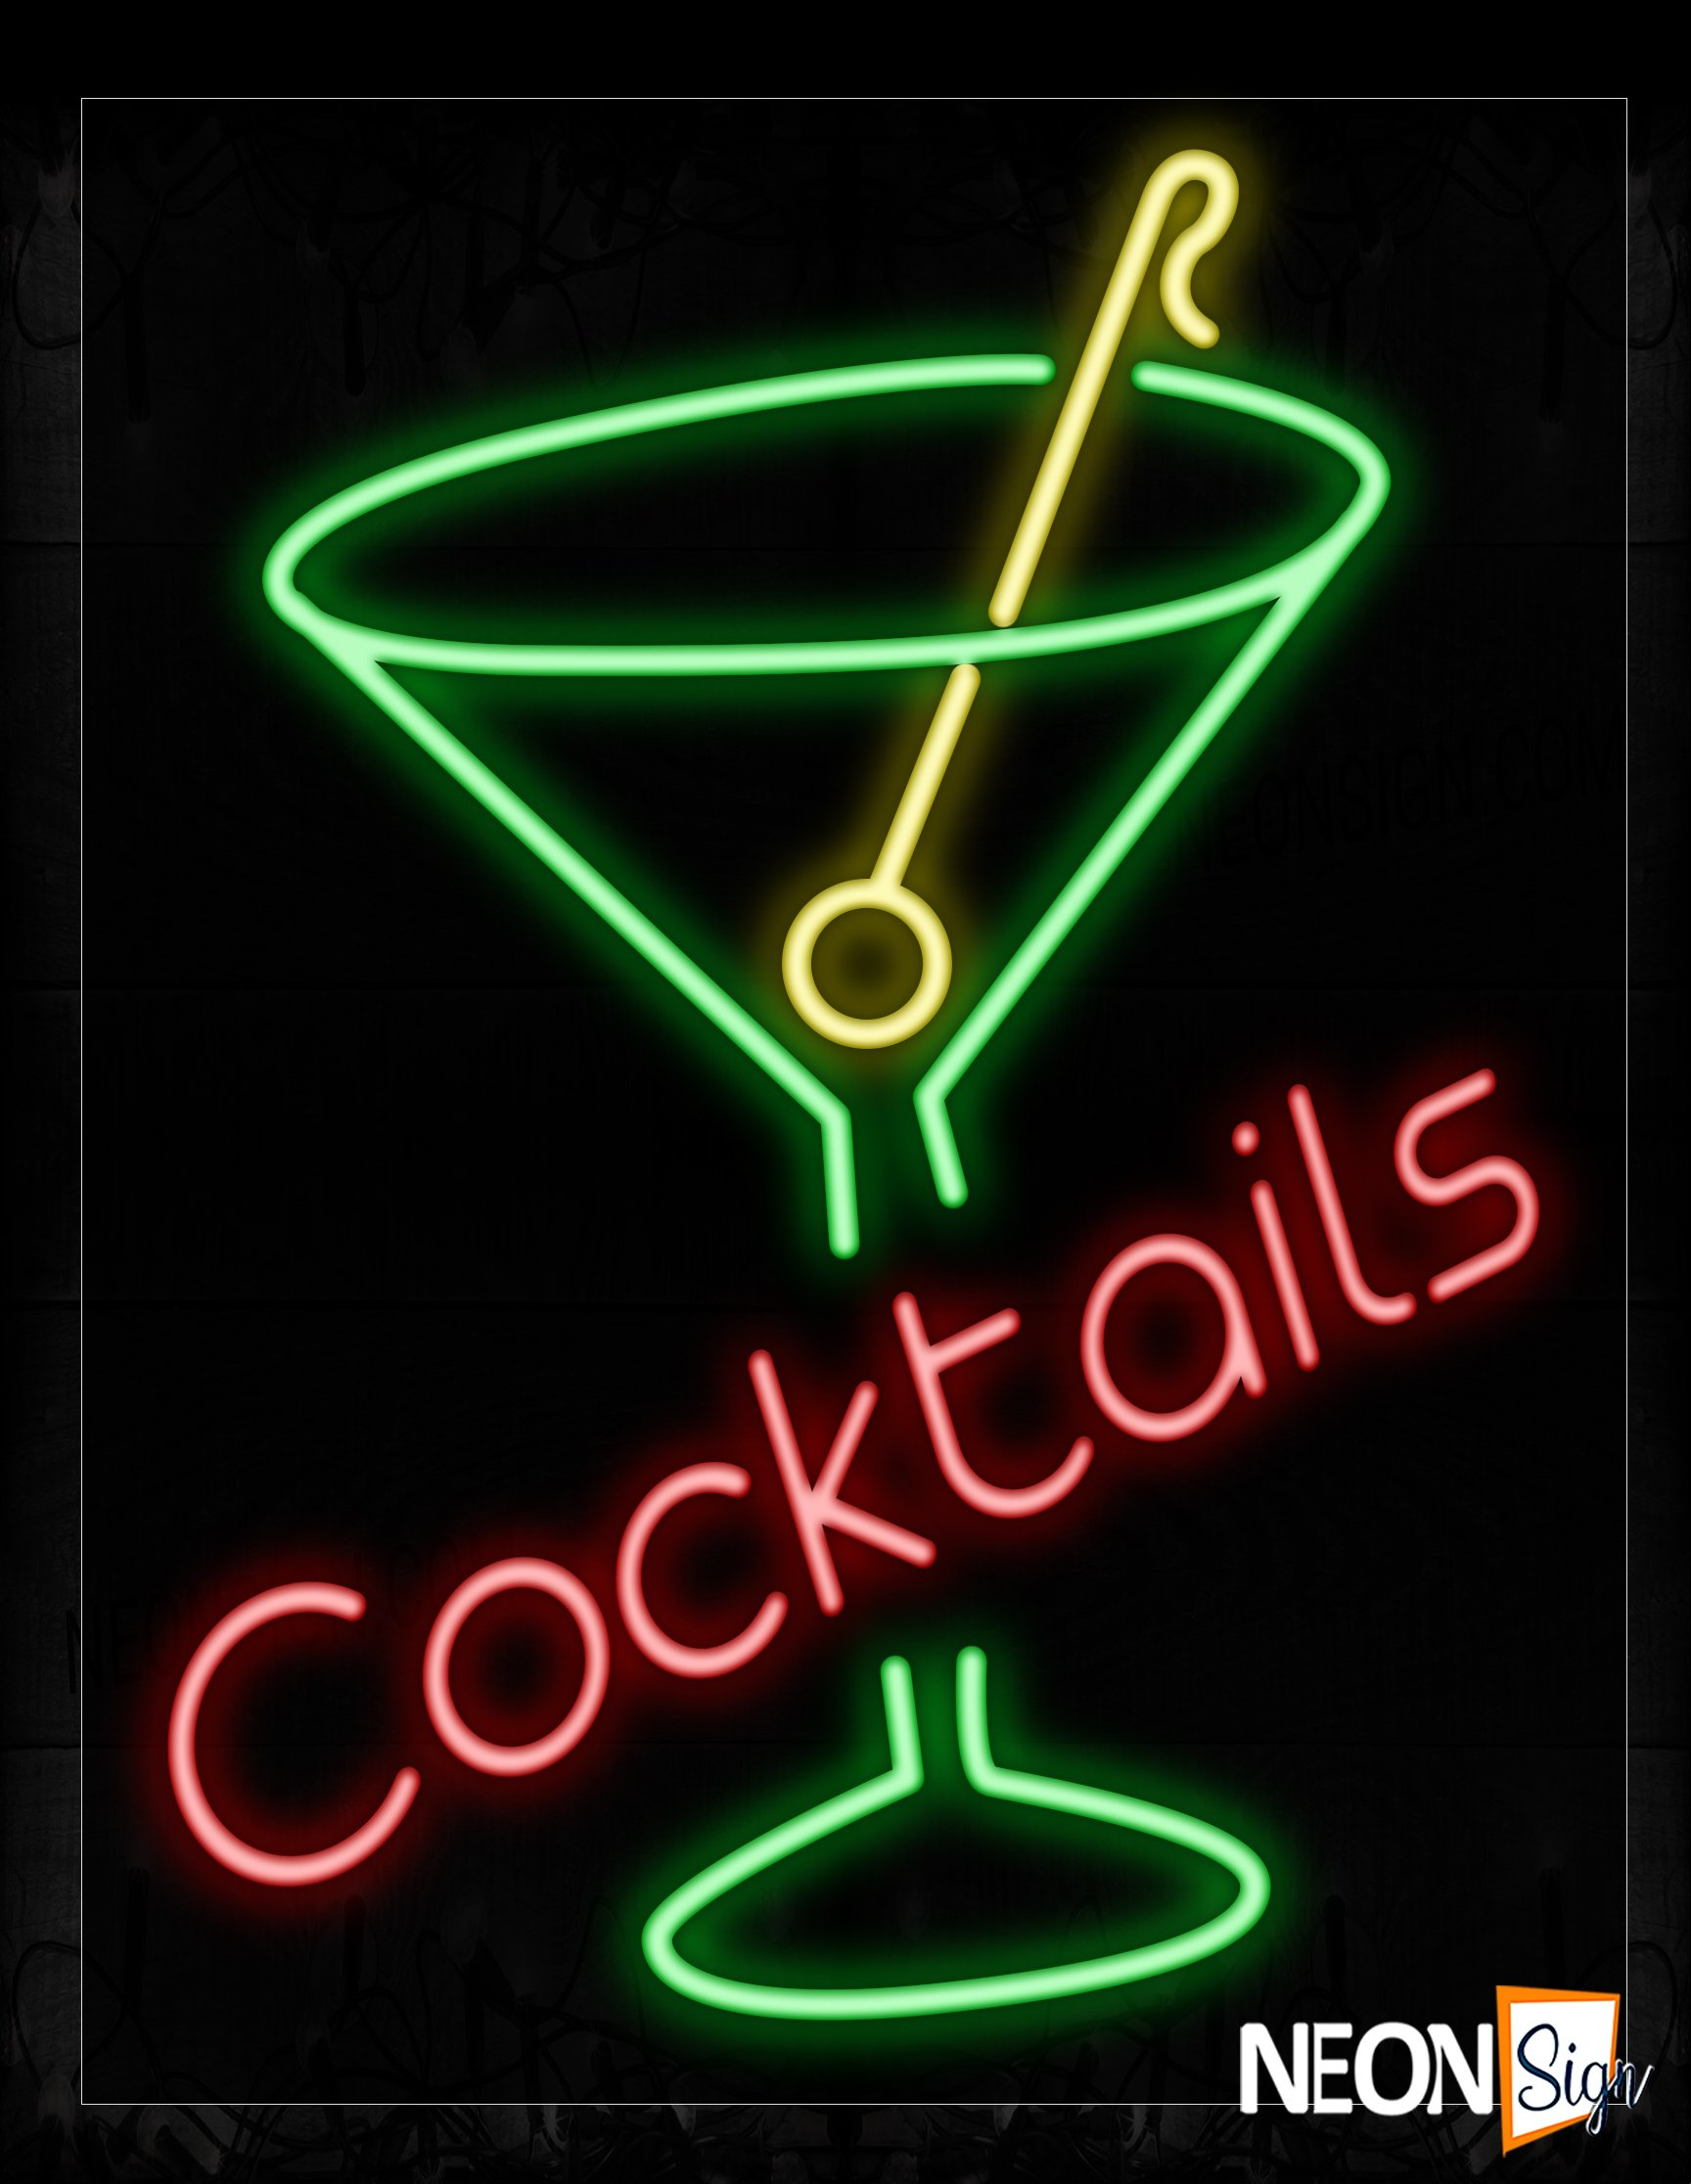 Image of 10439 Cocktails With Martini Glass Neon Signs_24x31 Black Backing